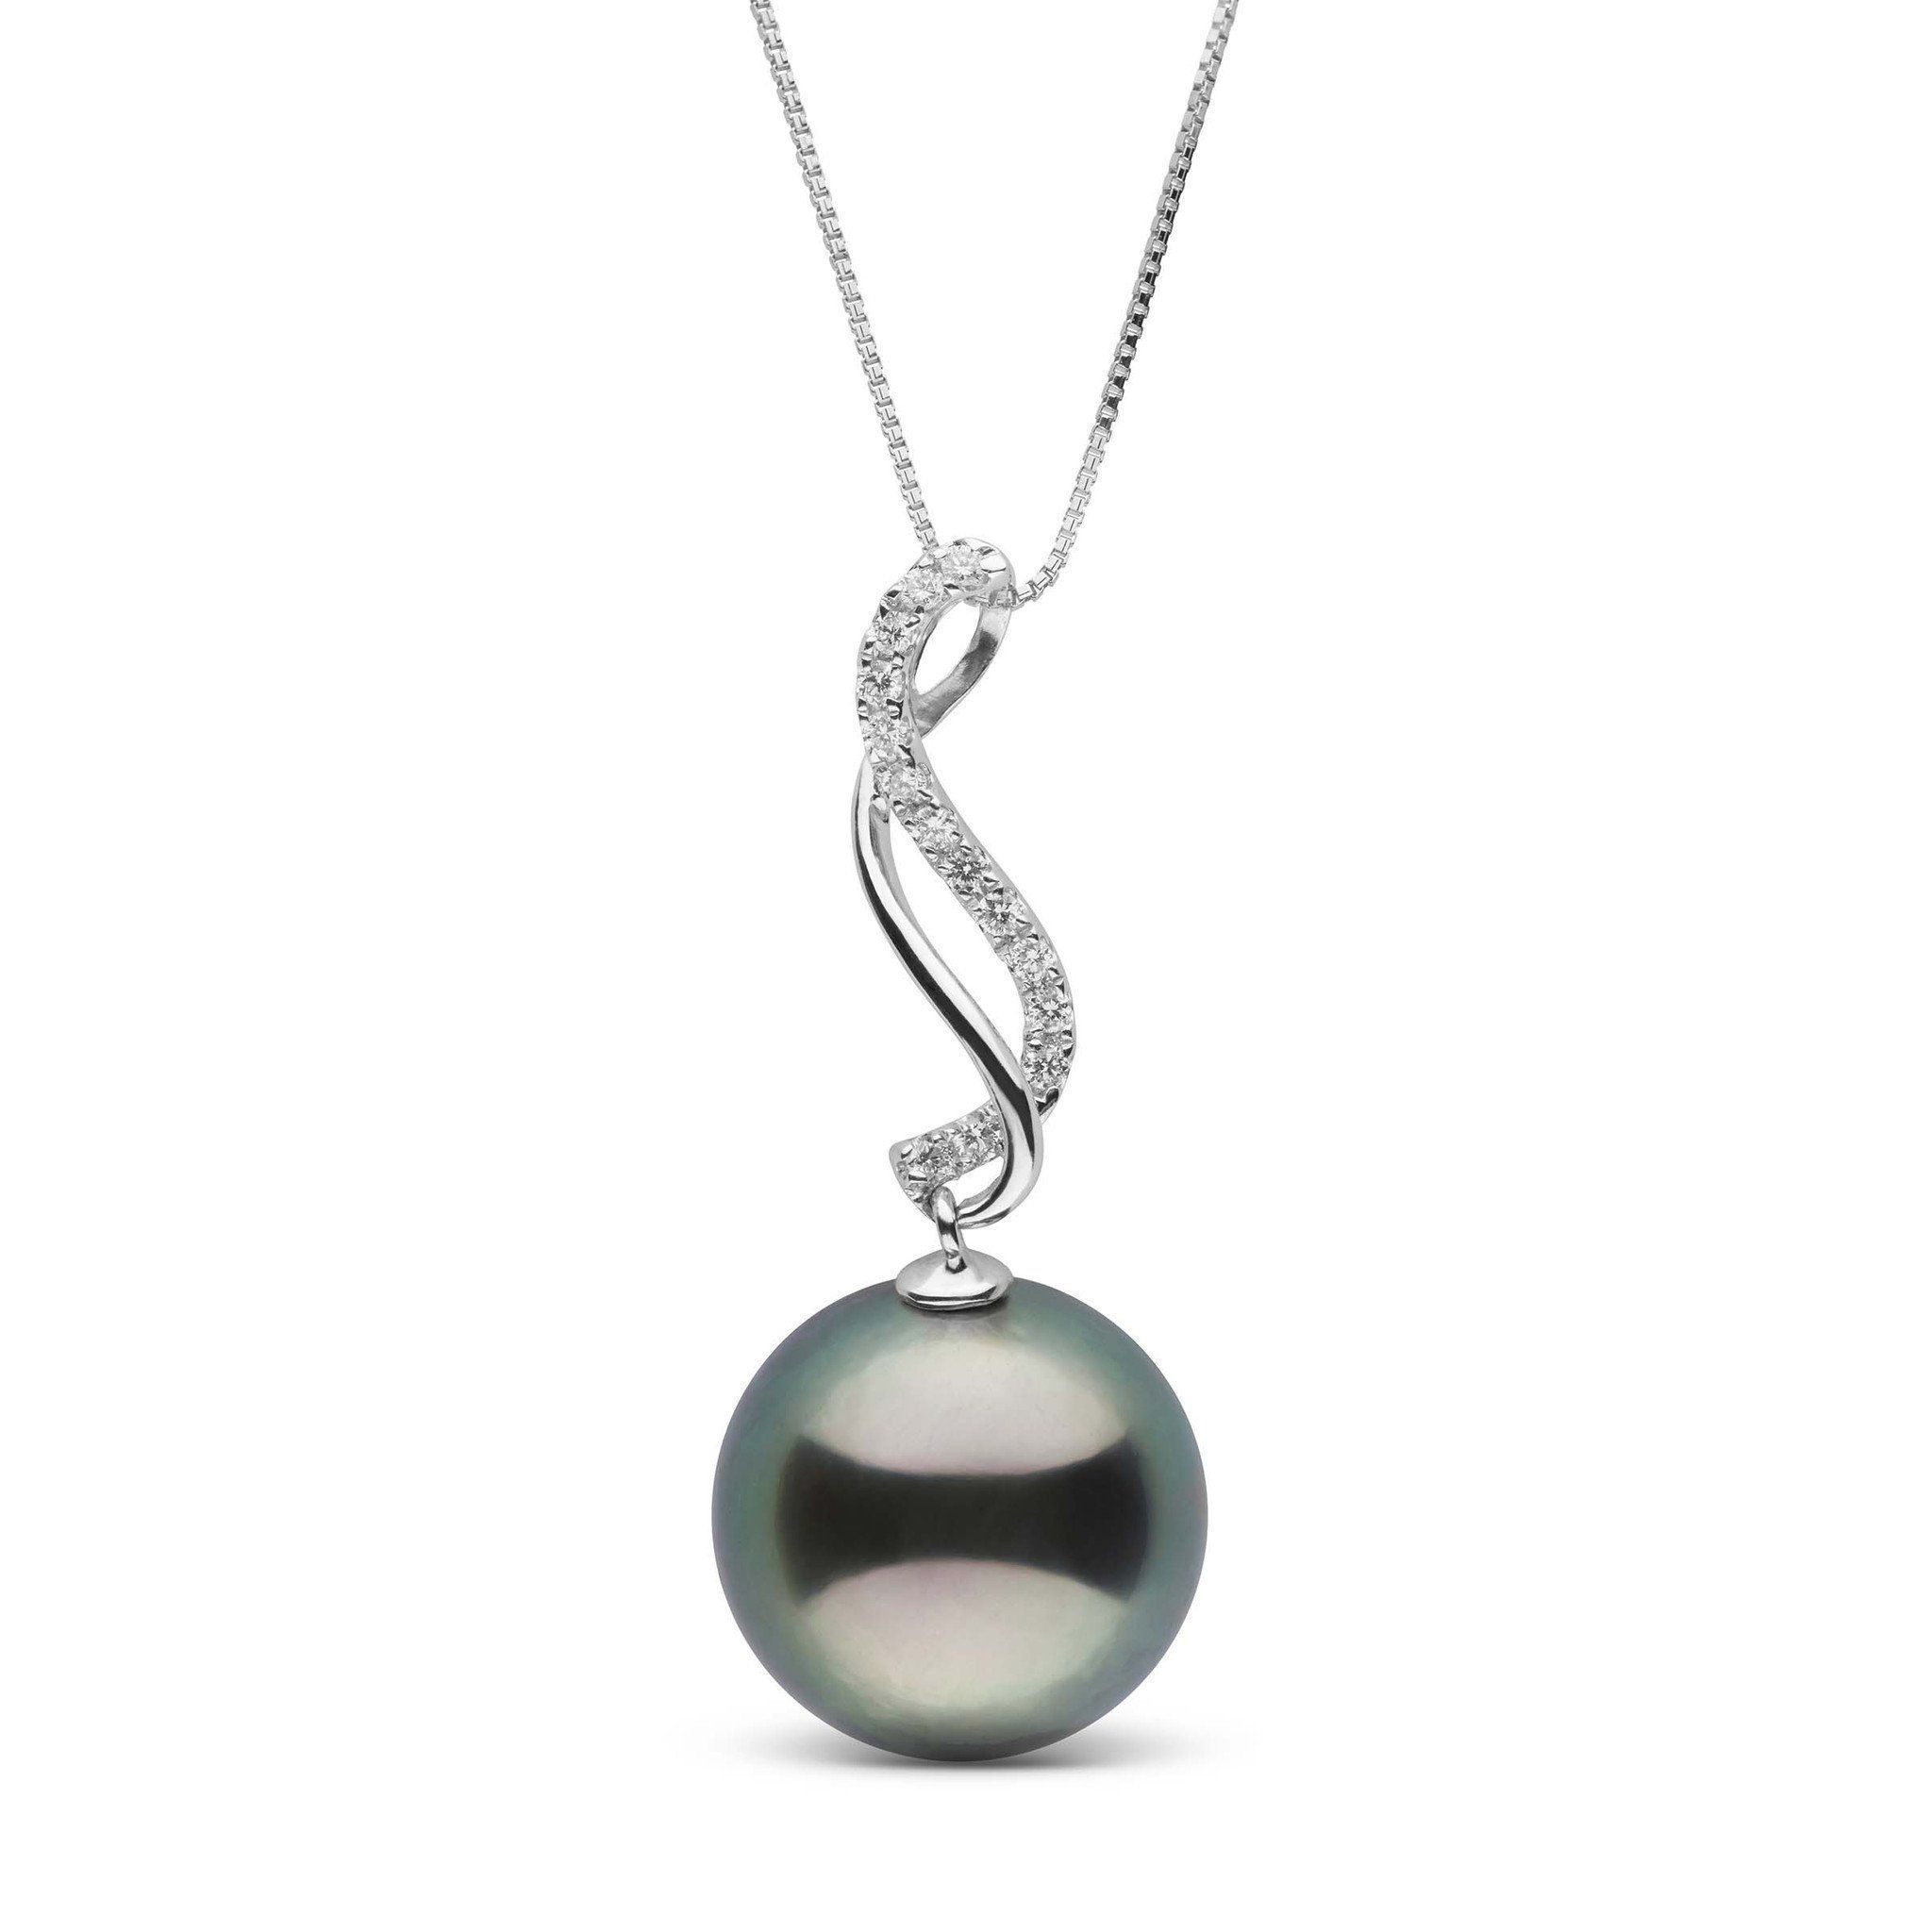 Infinity Collection 11.0-12.0 mm Tahitian Pearl & Diamond Pendant